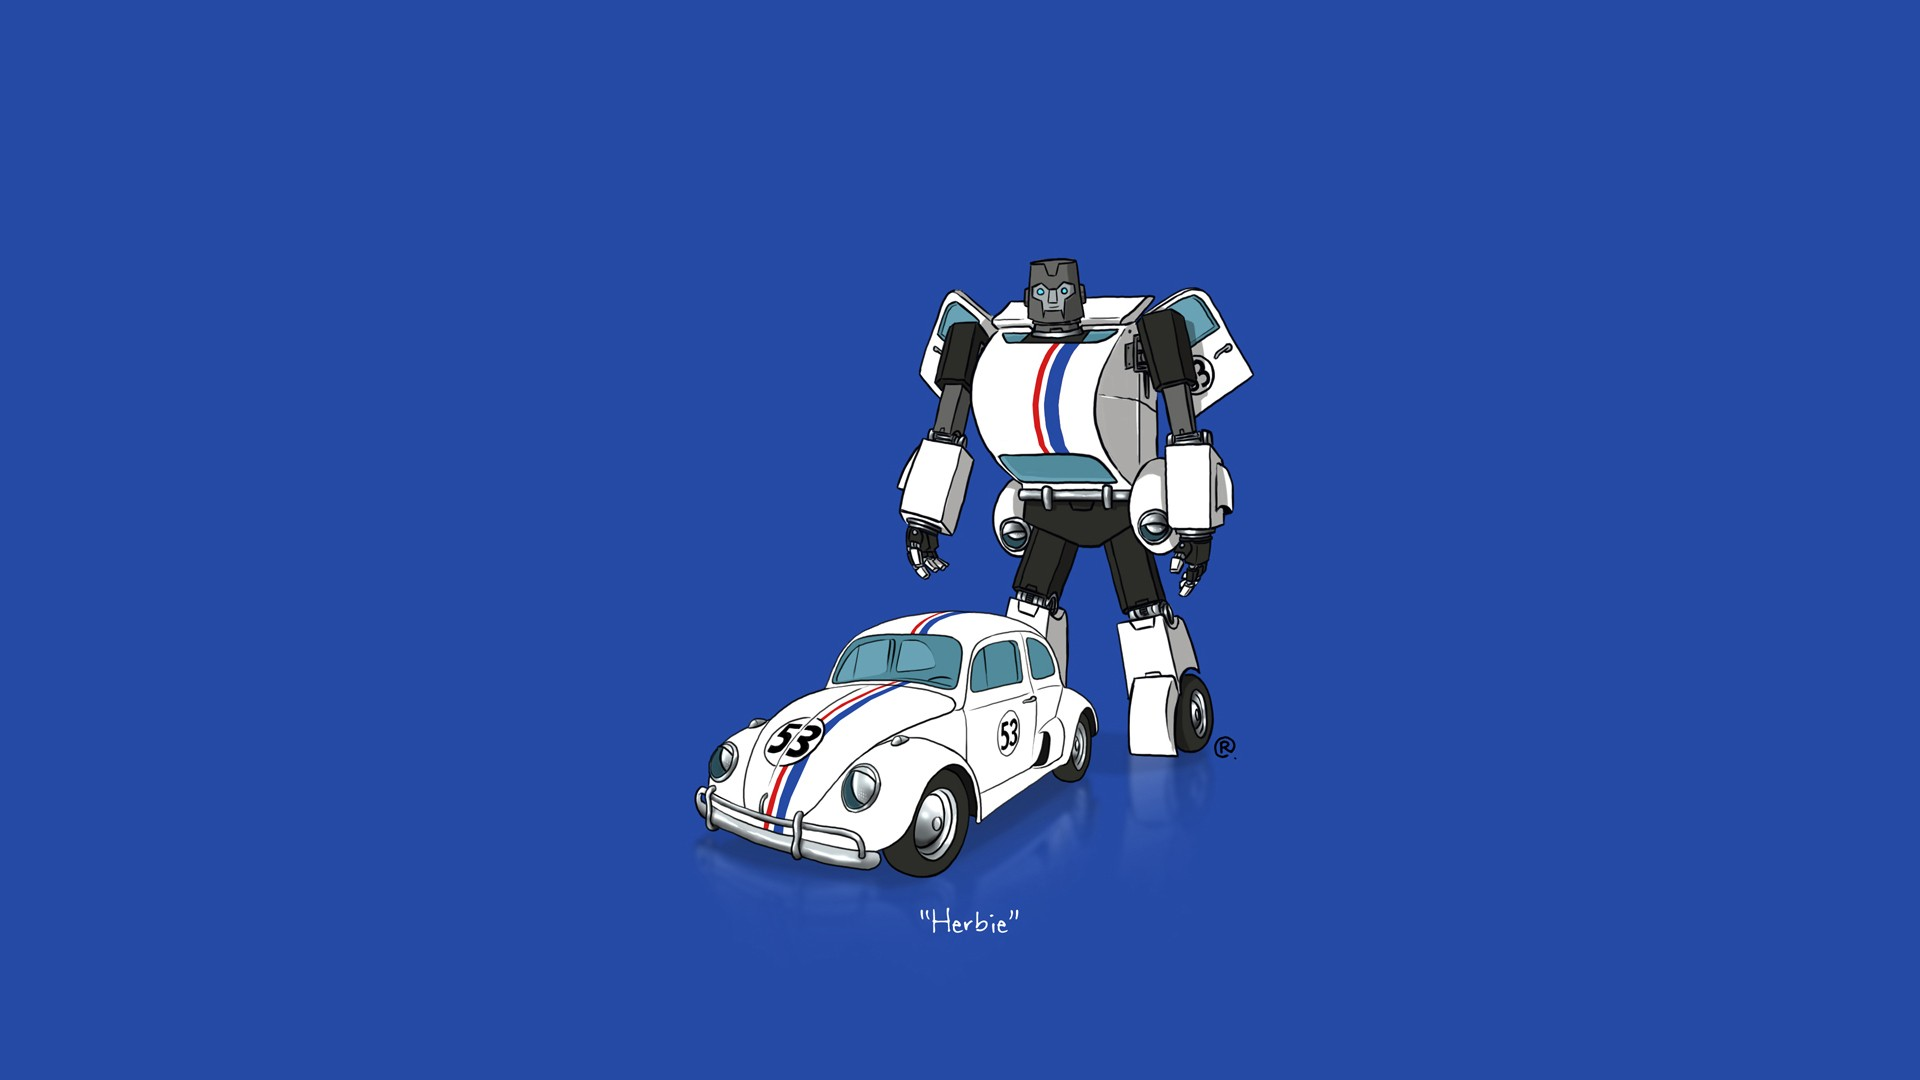 Vintage Car Hd Wallpapers For Pc Car Transformers Minimalism Herbie Wallpapers Hd